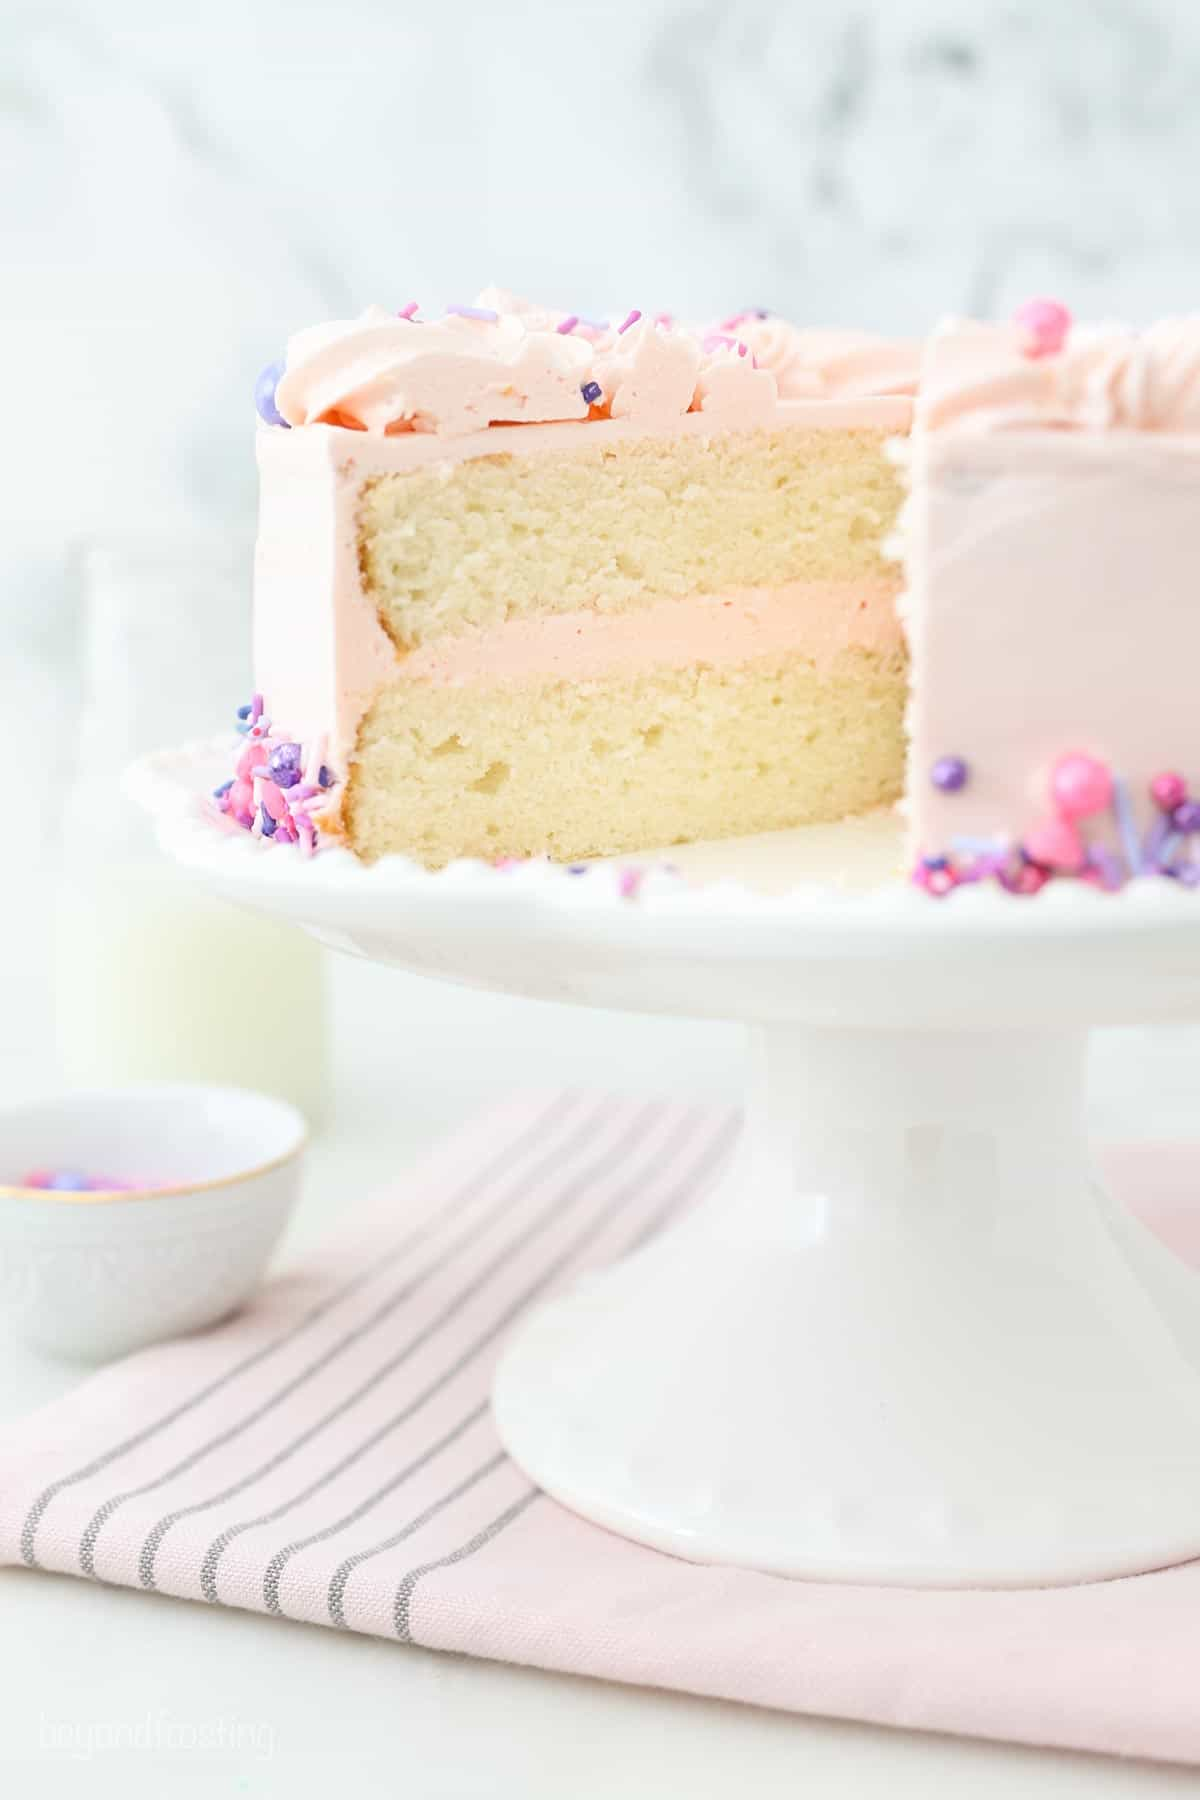 A White Cake with a slice taken out, showing the two layers with the frosting in between.